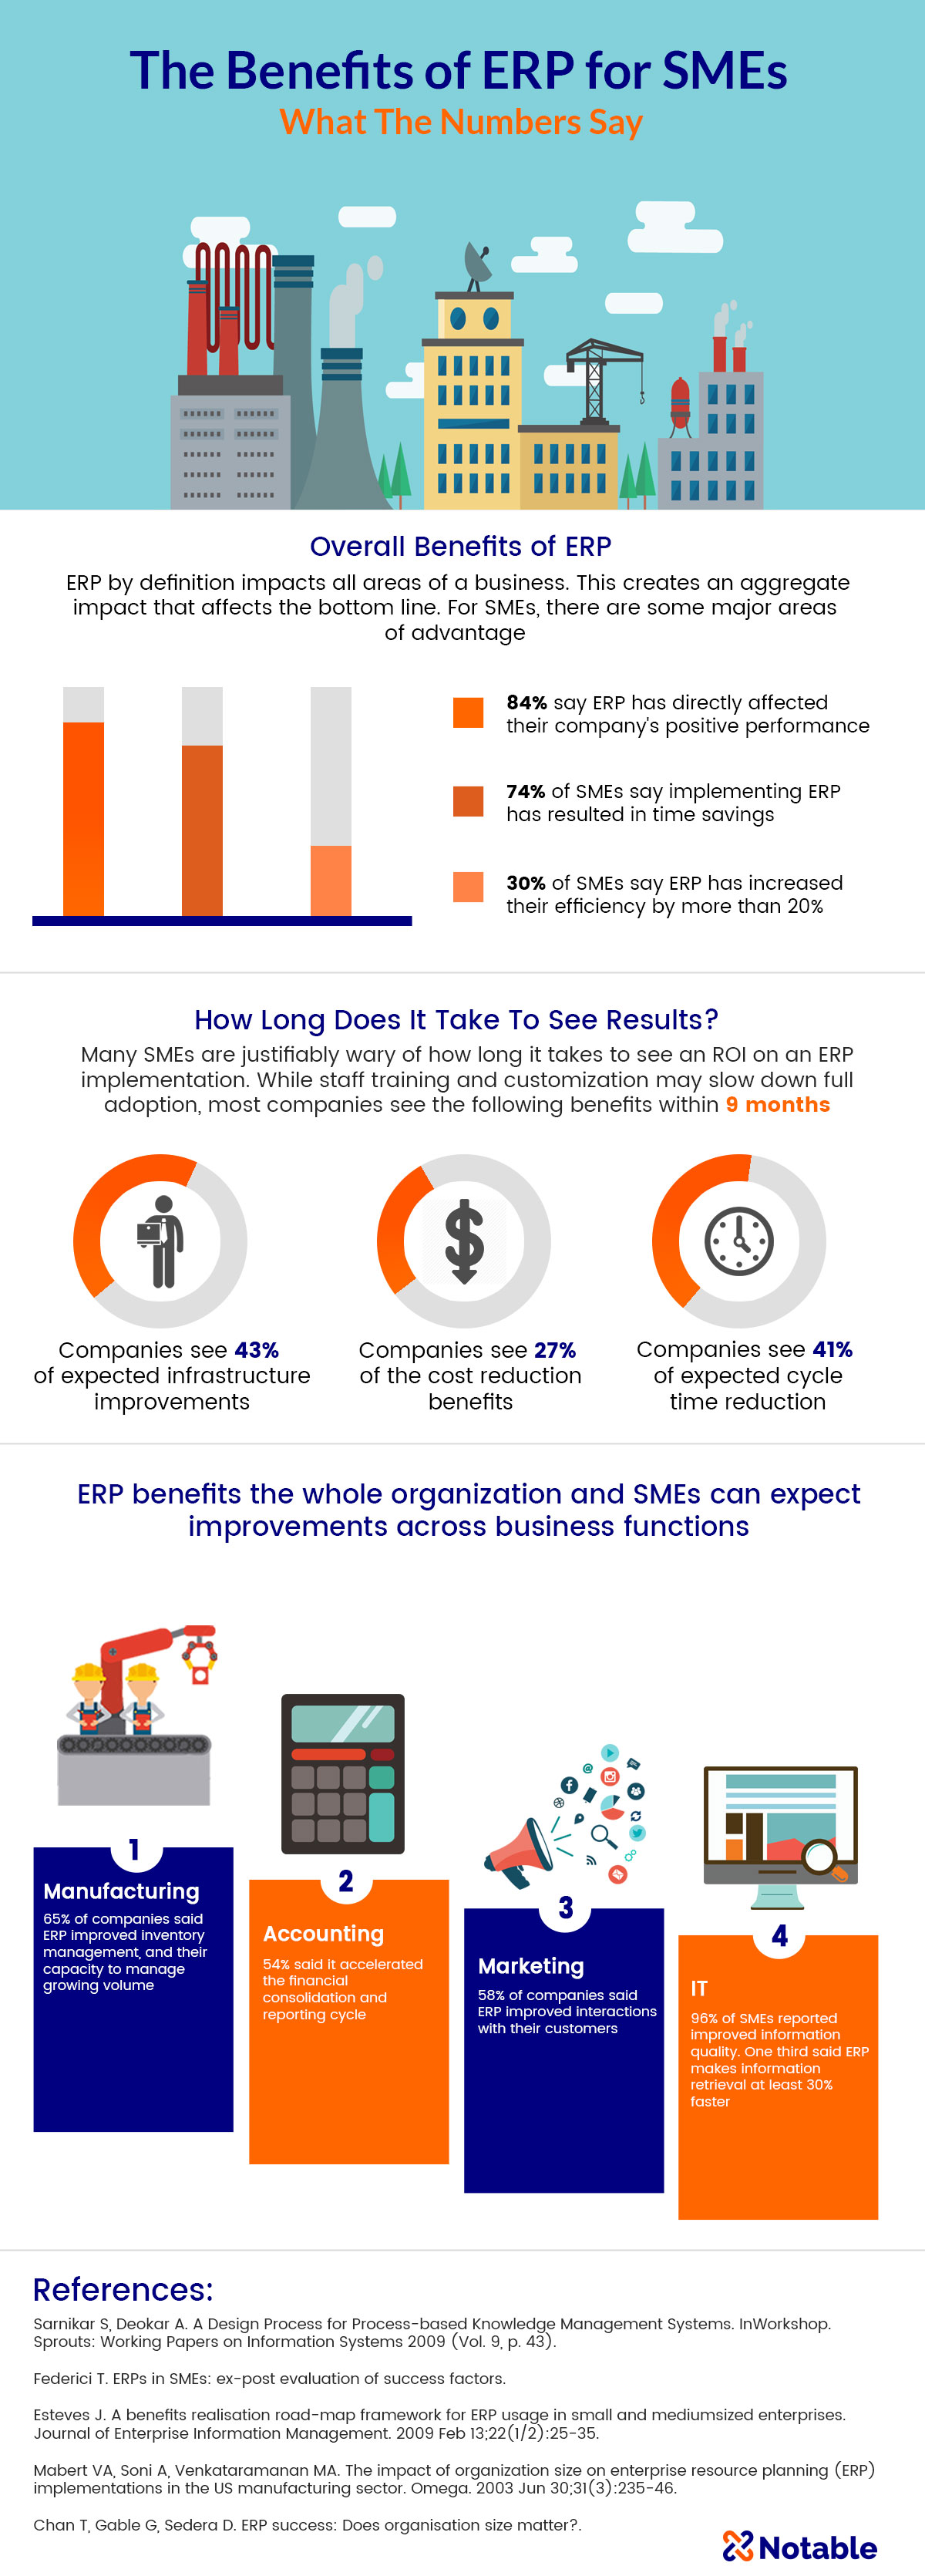 erp definition Epicor enterprise resource planning (erp) solutions provide a full suite of business applications for manufacturing, distribution, retail operations, financials, and hr.